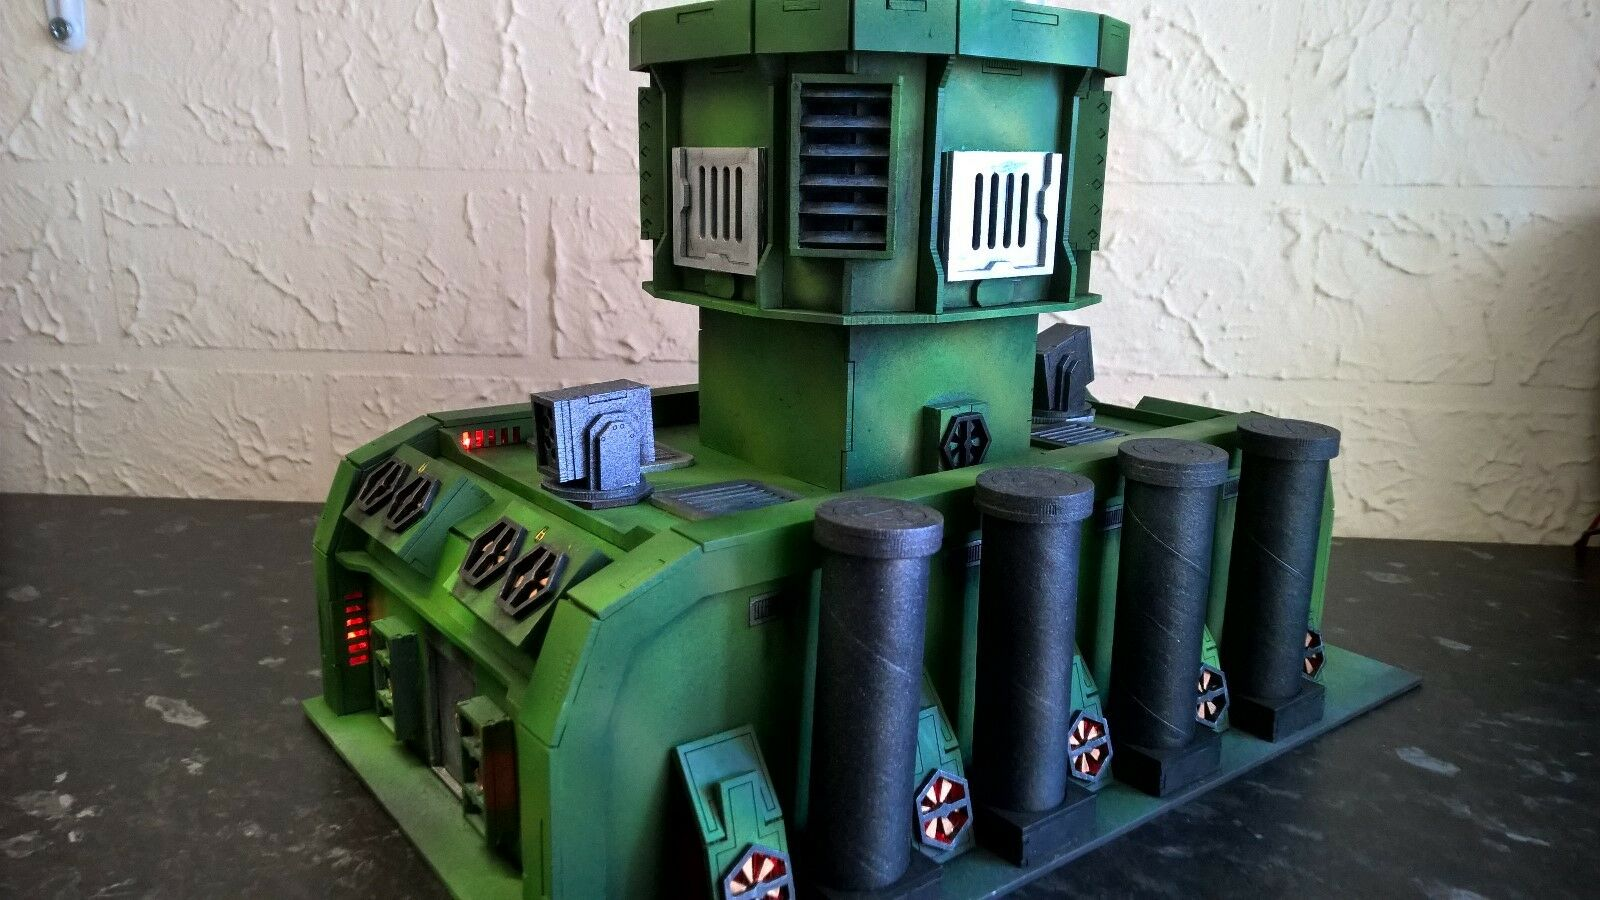 Exped outpost warhammer 40k wargame infinity building terrain scenary Legion